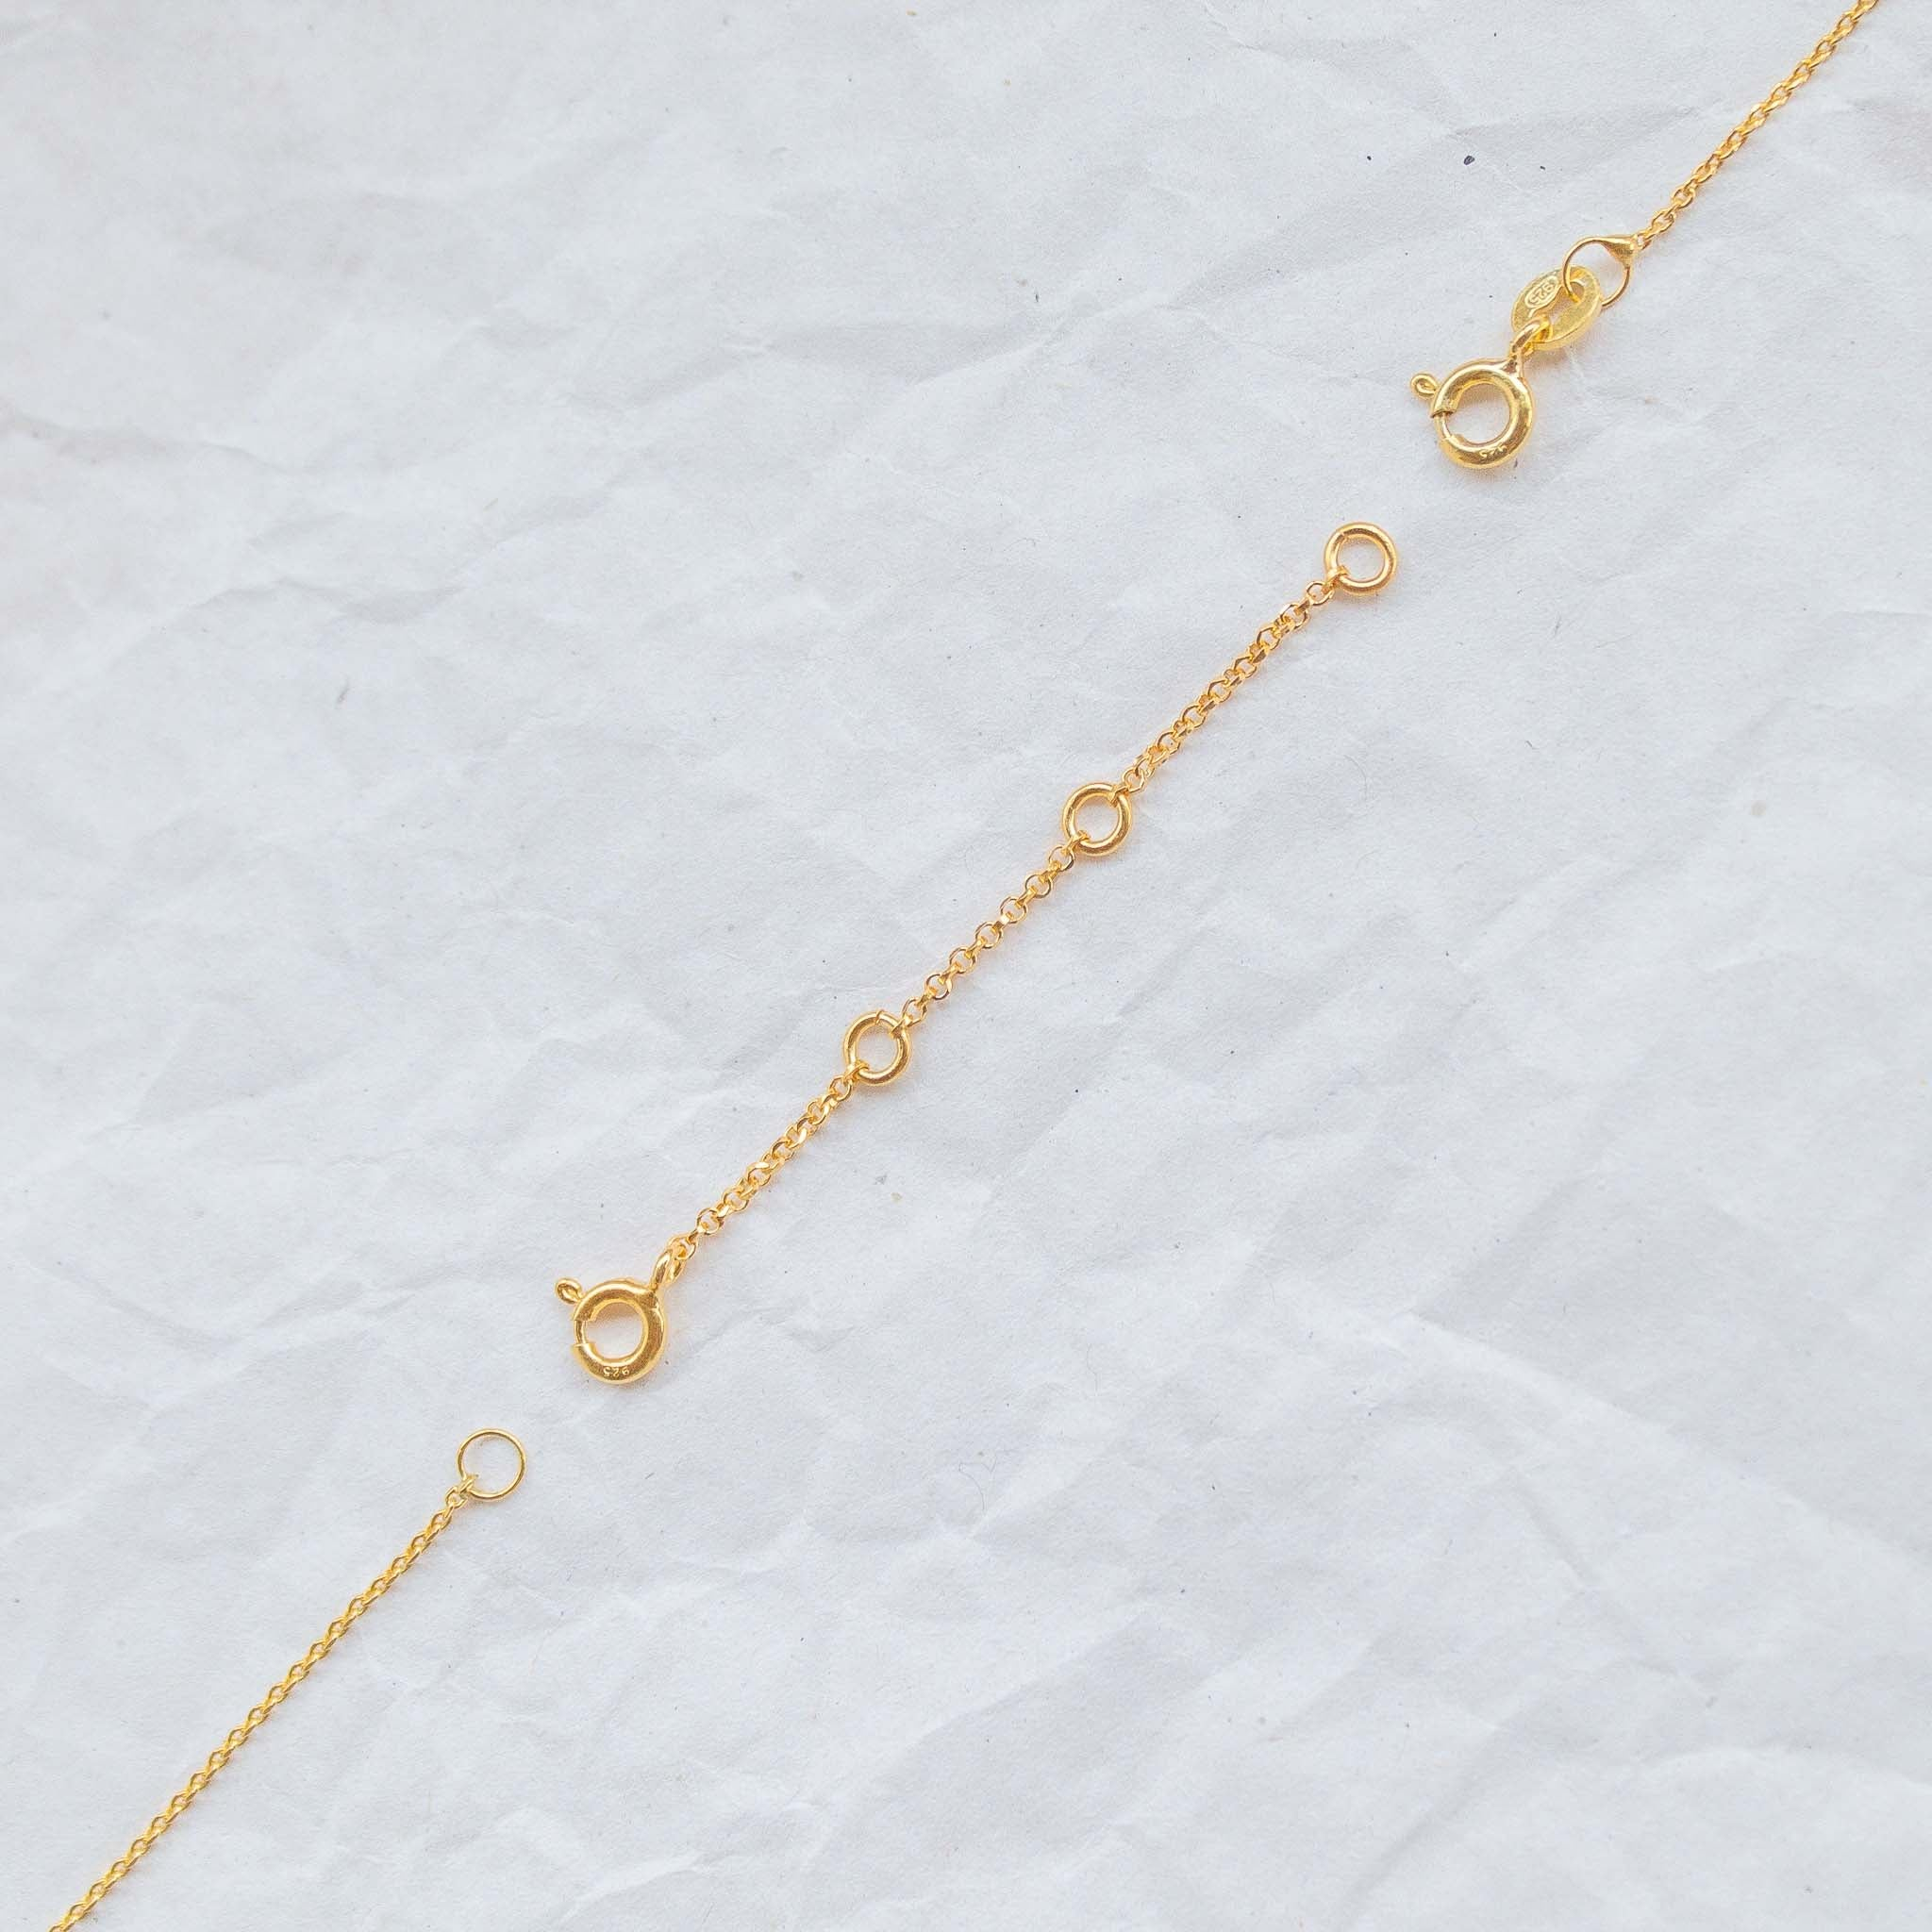 Necklace Chain Extender in gold